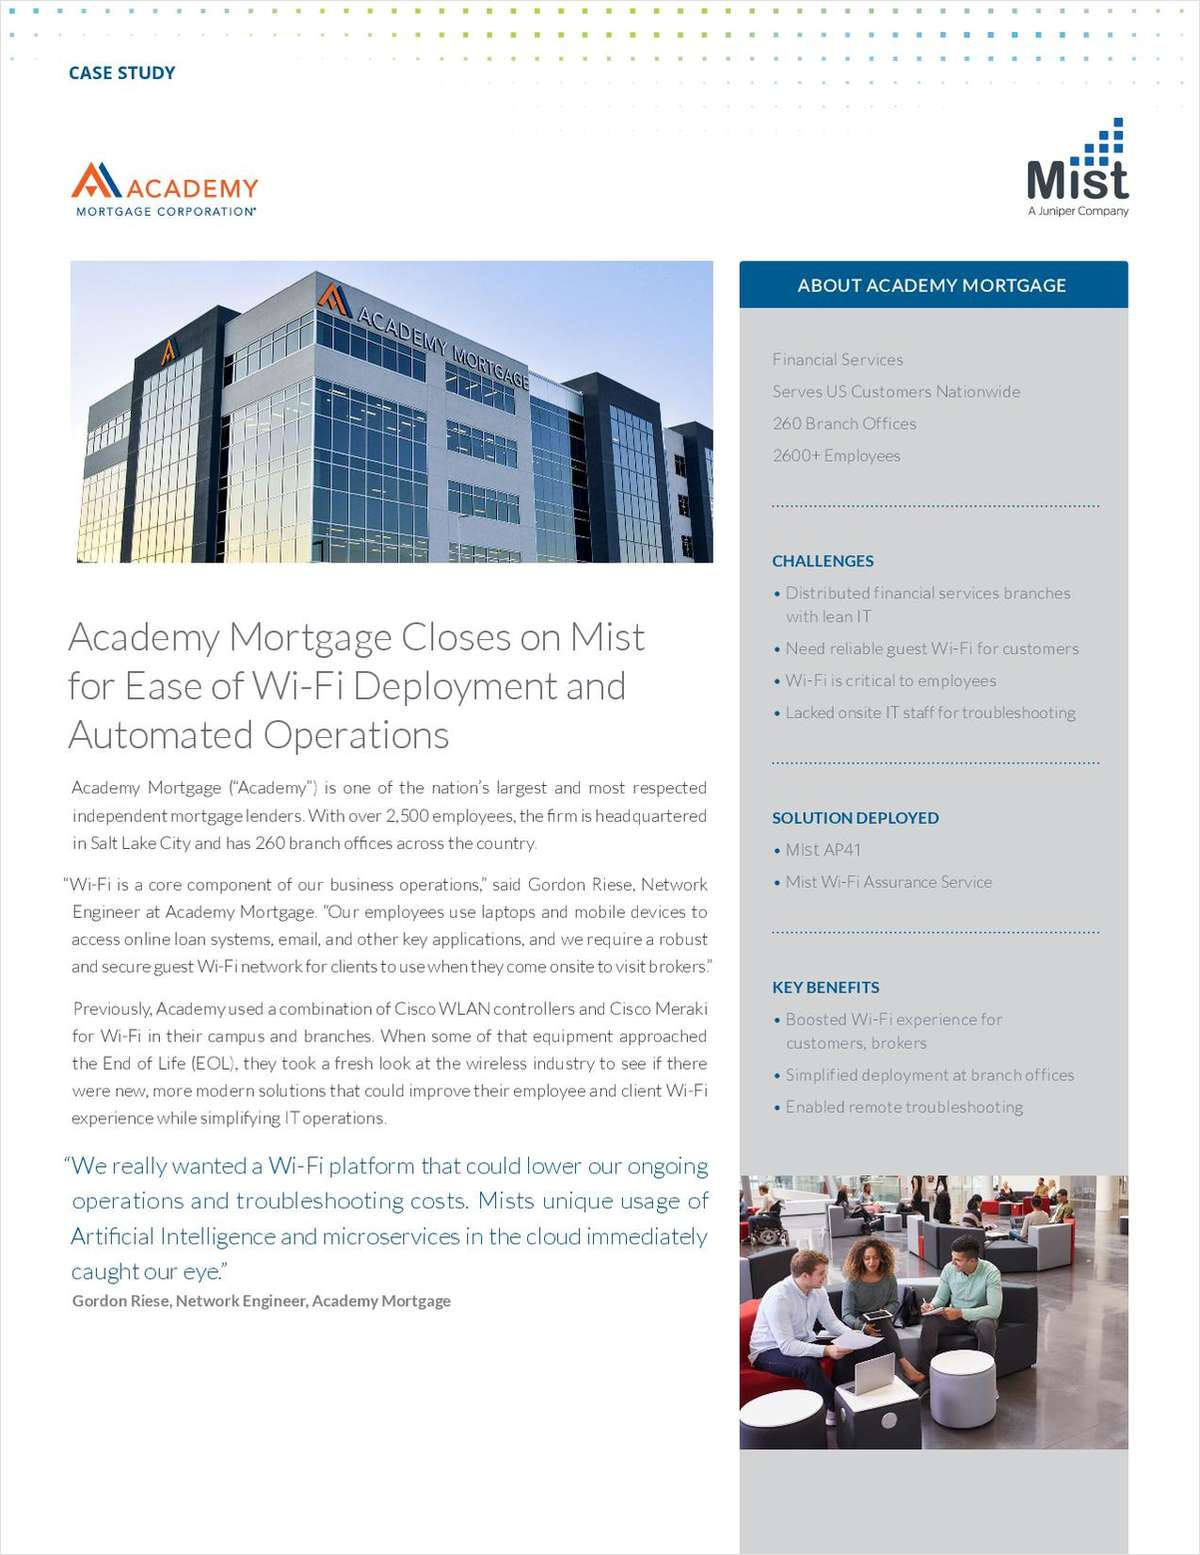 Academy Mortgage Closes on Mist for Ease of Wi-Fi Deployment and Automated Operations